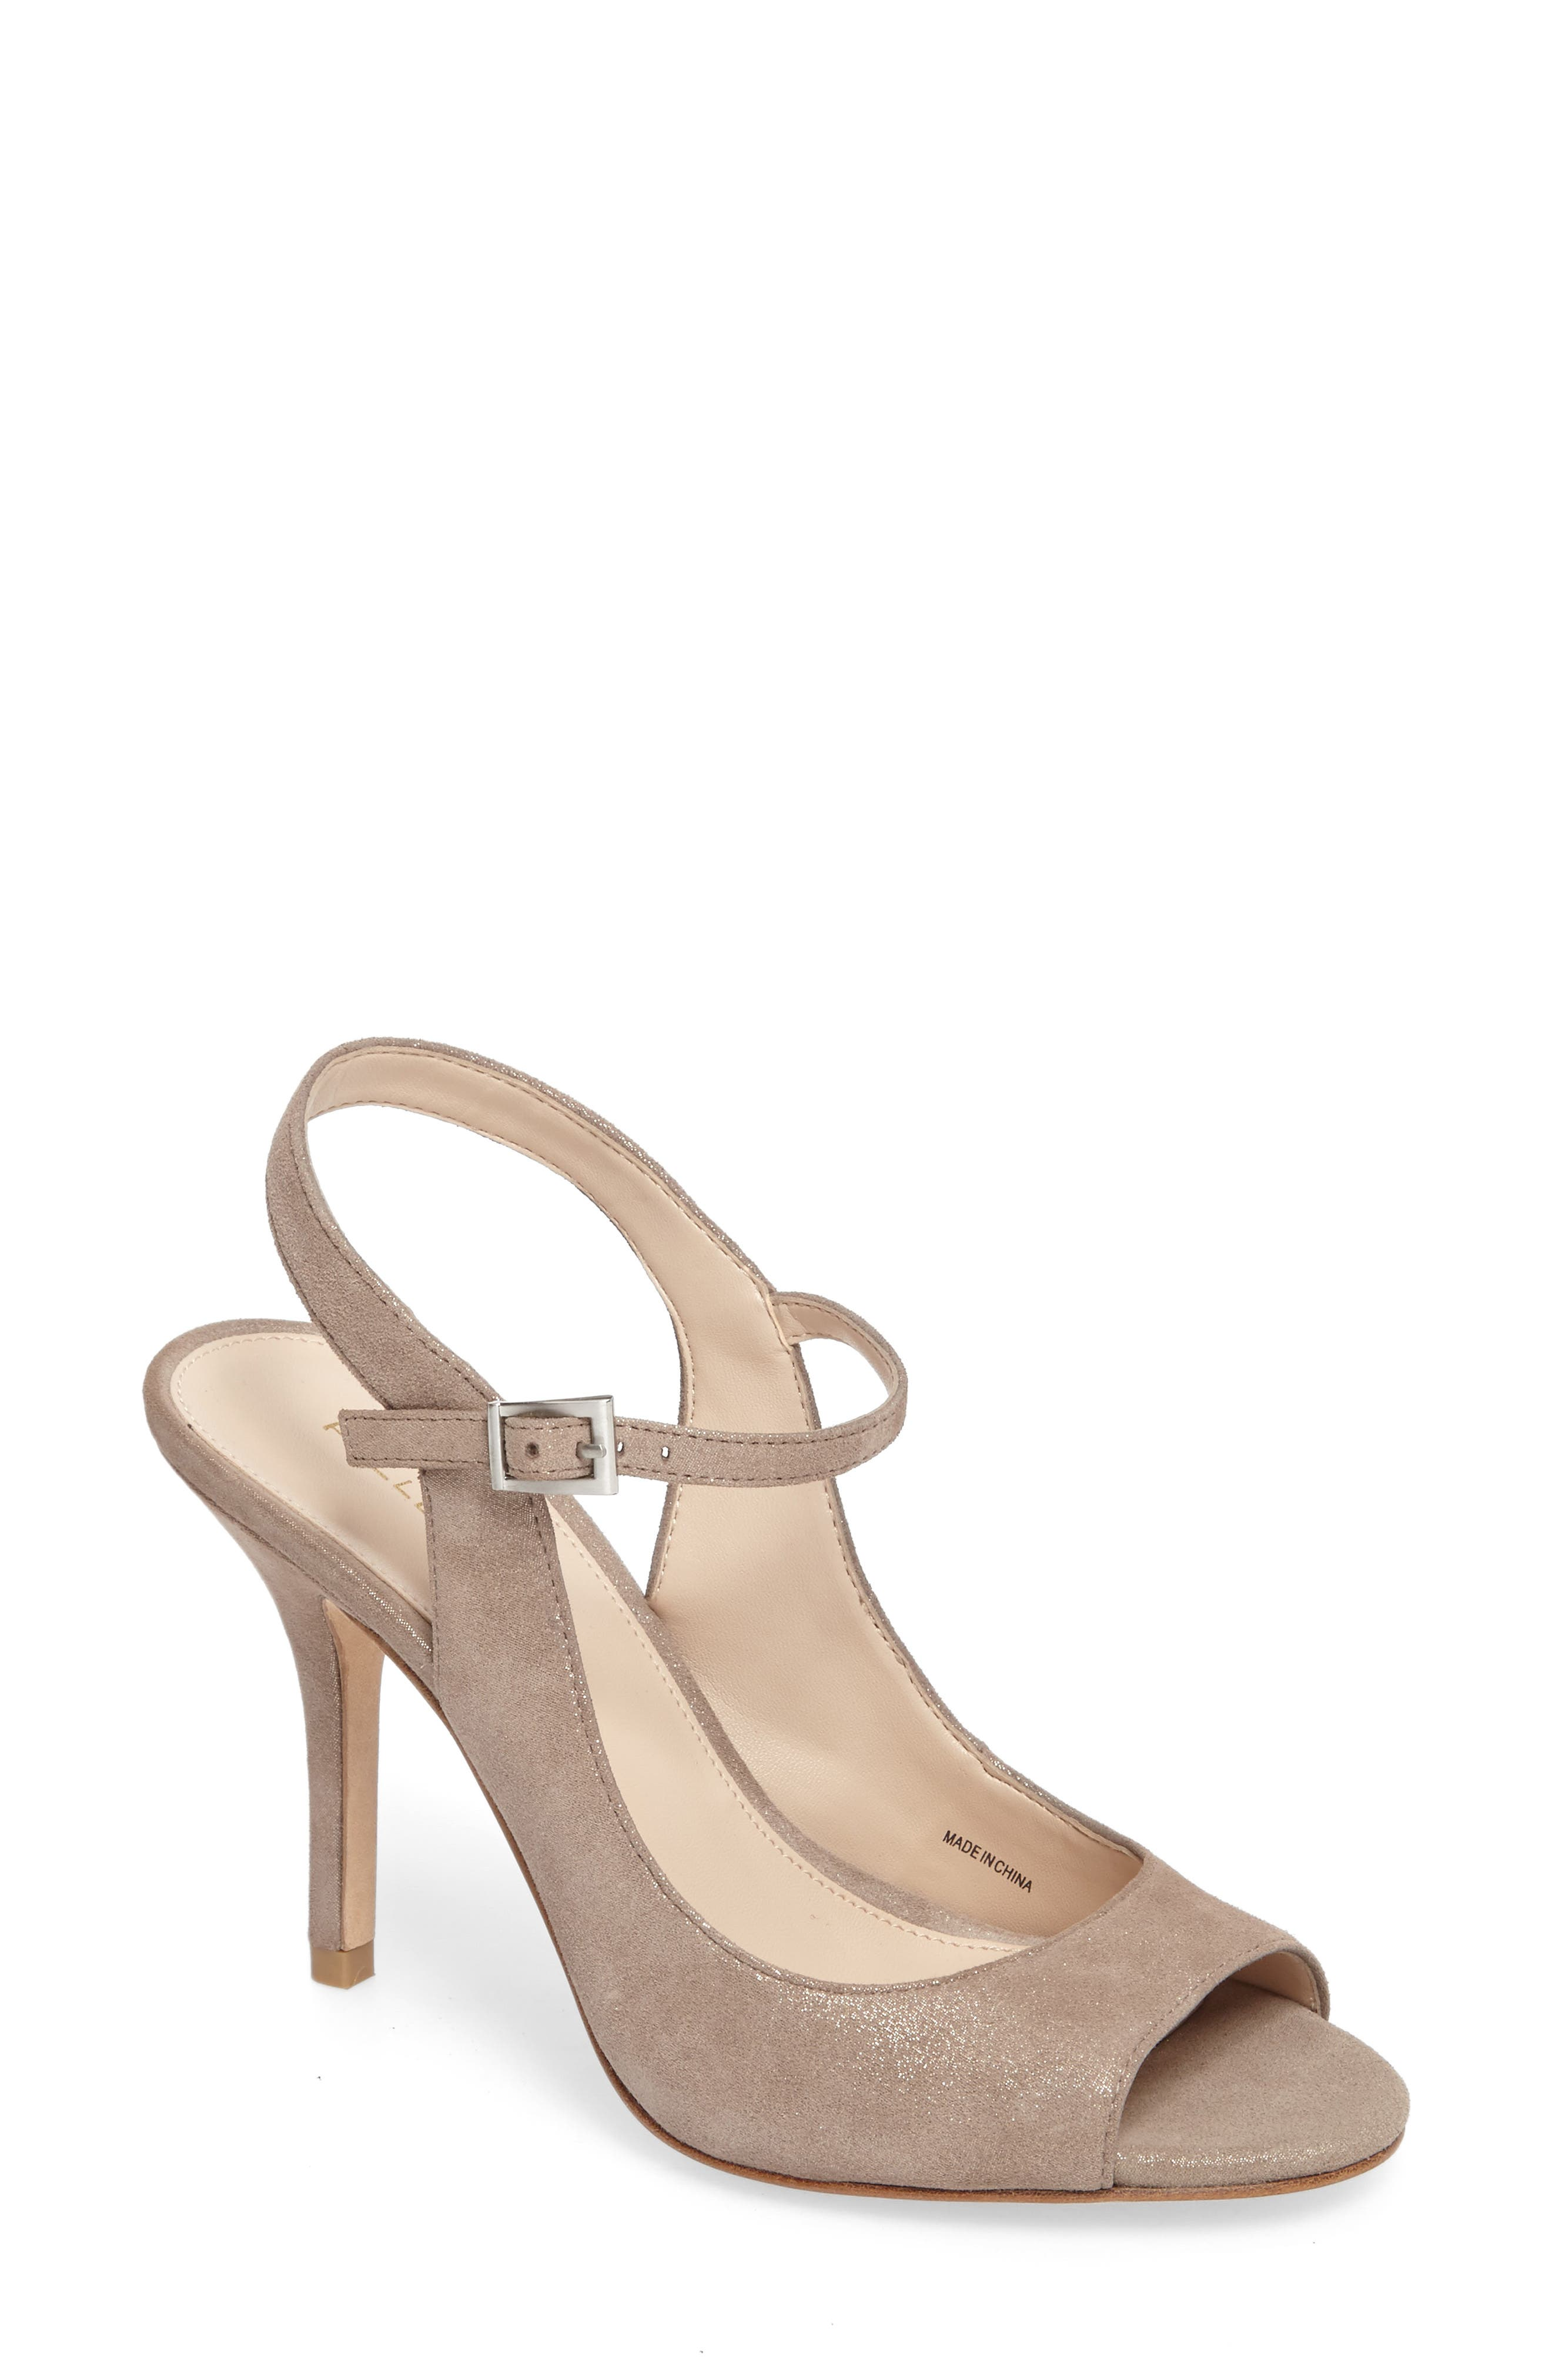 Kinsey Sandal,                             Main thumbnail 1, color,                             Taupe Leather